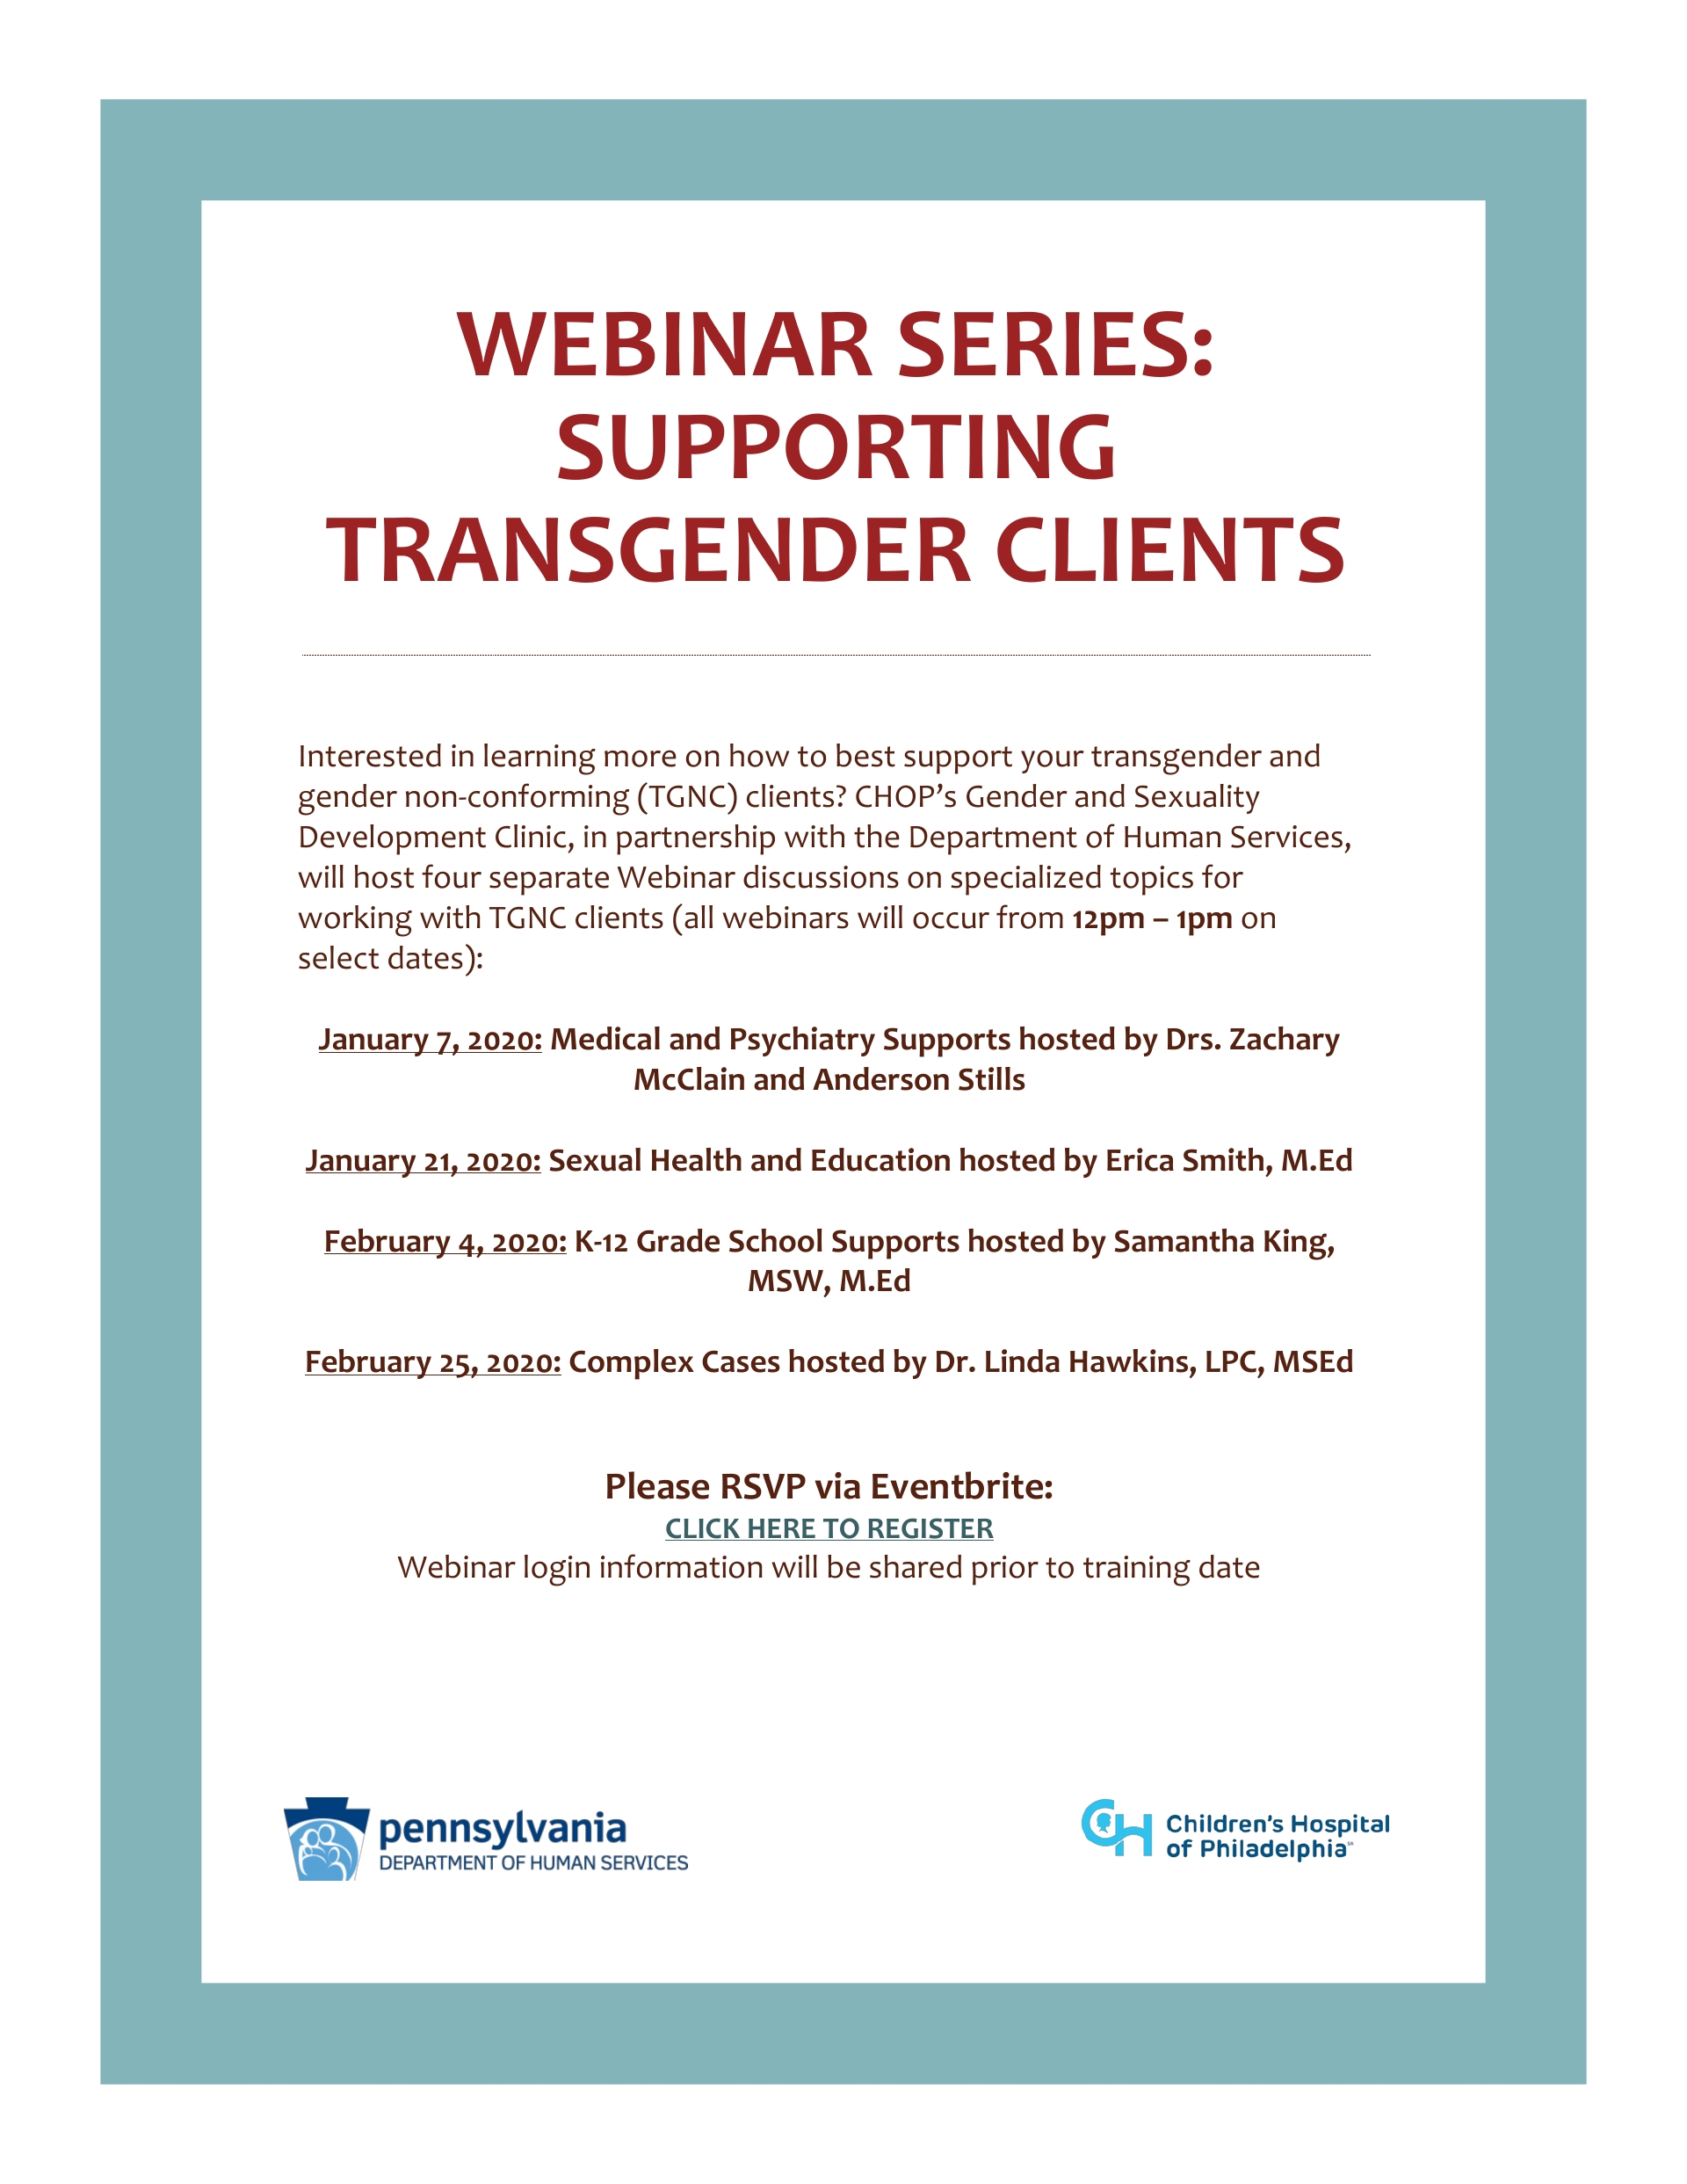 WEBINAR SERIES: SUPPORTING TRANSGENDER CLIENTS January and February 2020